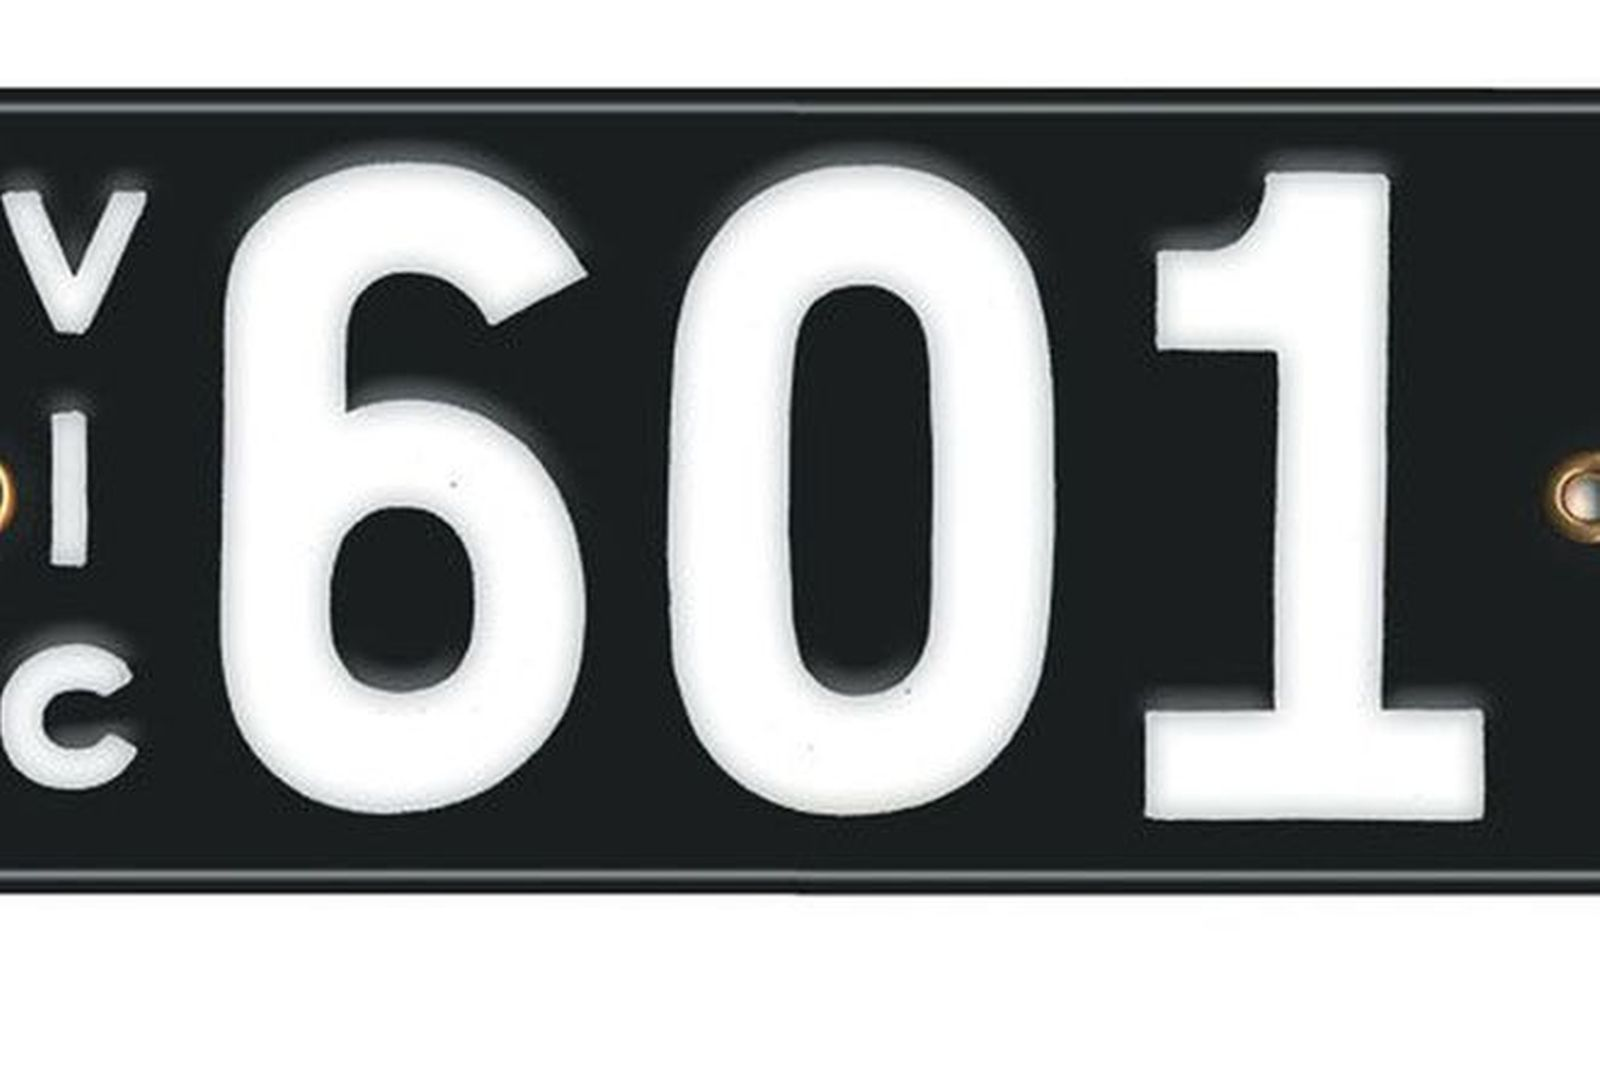 Victorian Vitreous Enamel Number Plates - '601'